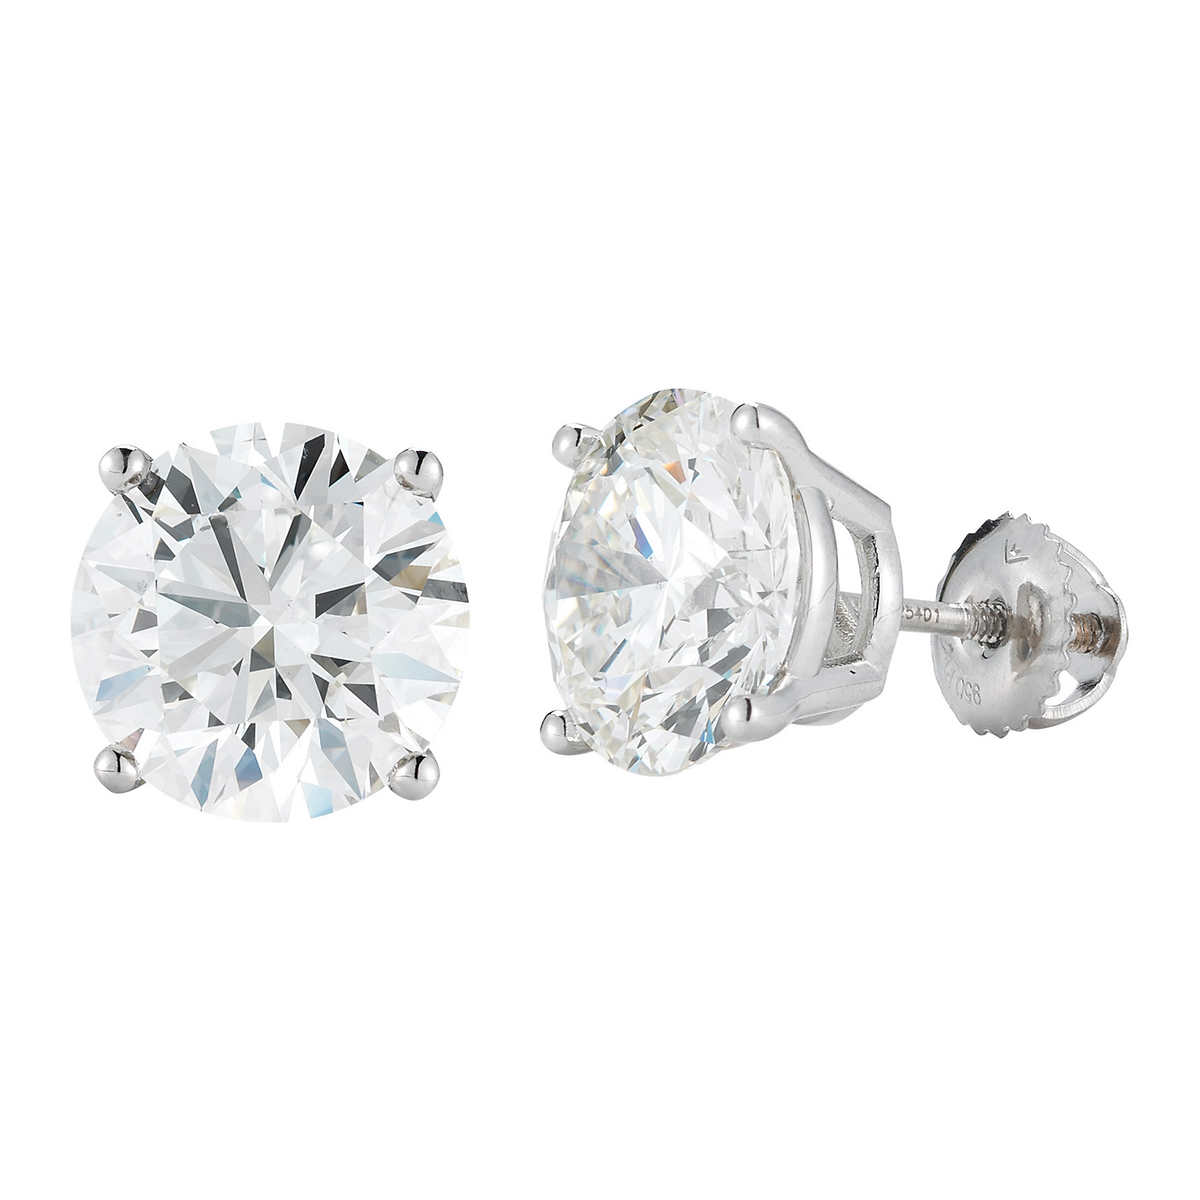 a15343cd4 Round Brilliant 1.80 ctw VS2 Clarity, I Color Diamond 14kt White Gold  Screwback Stud Earrings